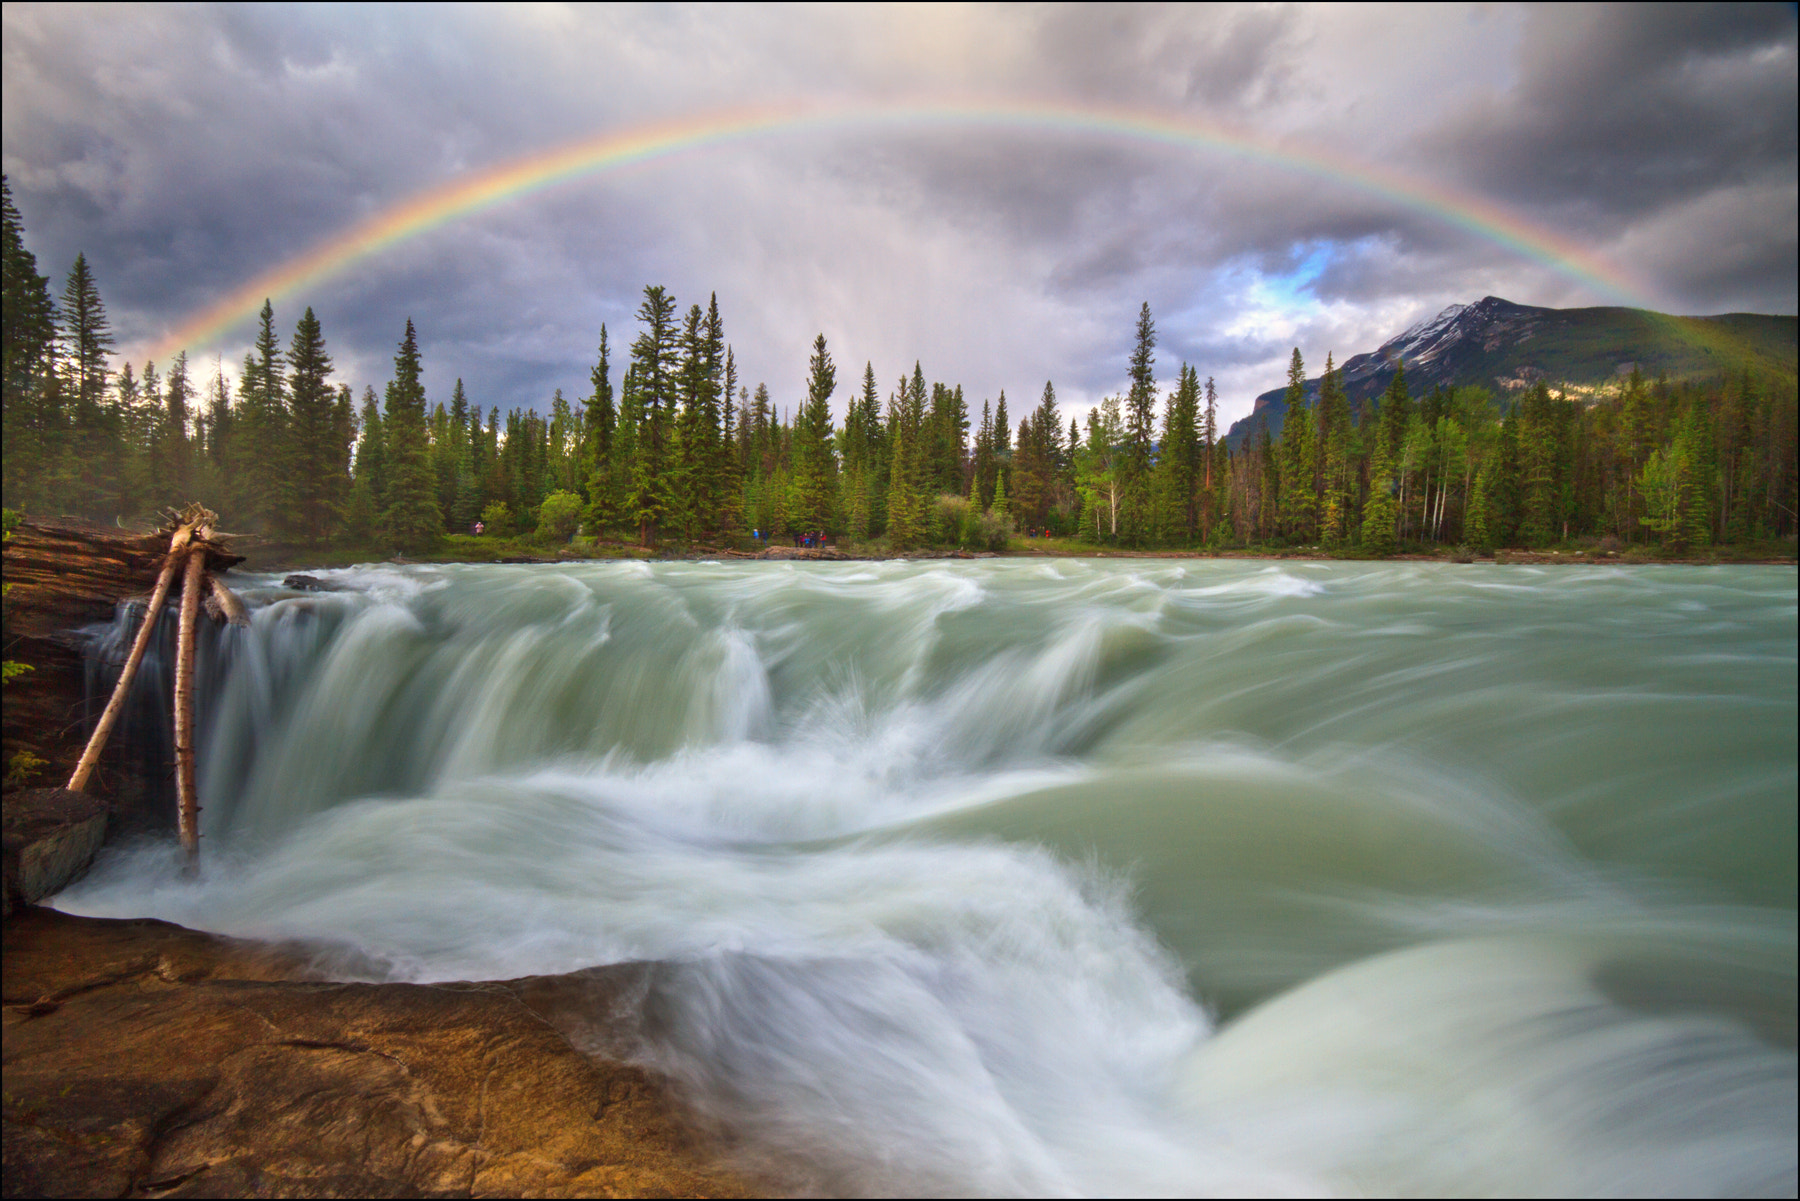 Photograph Athabasca Falls Rainbow by Steve Passlow on 500px